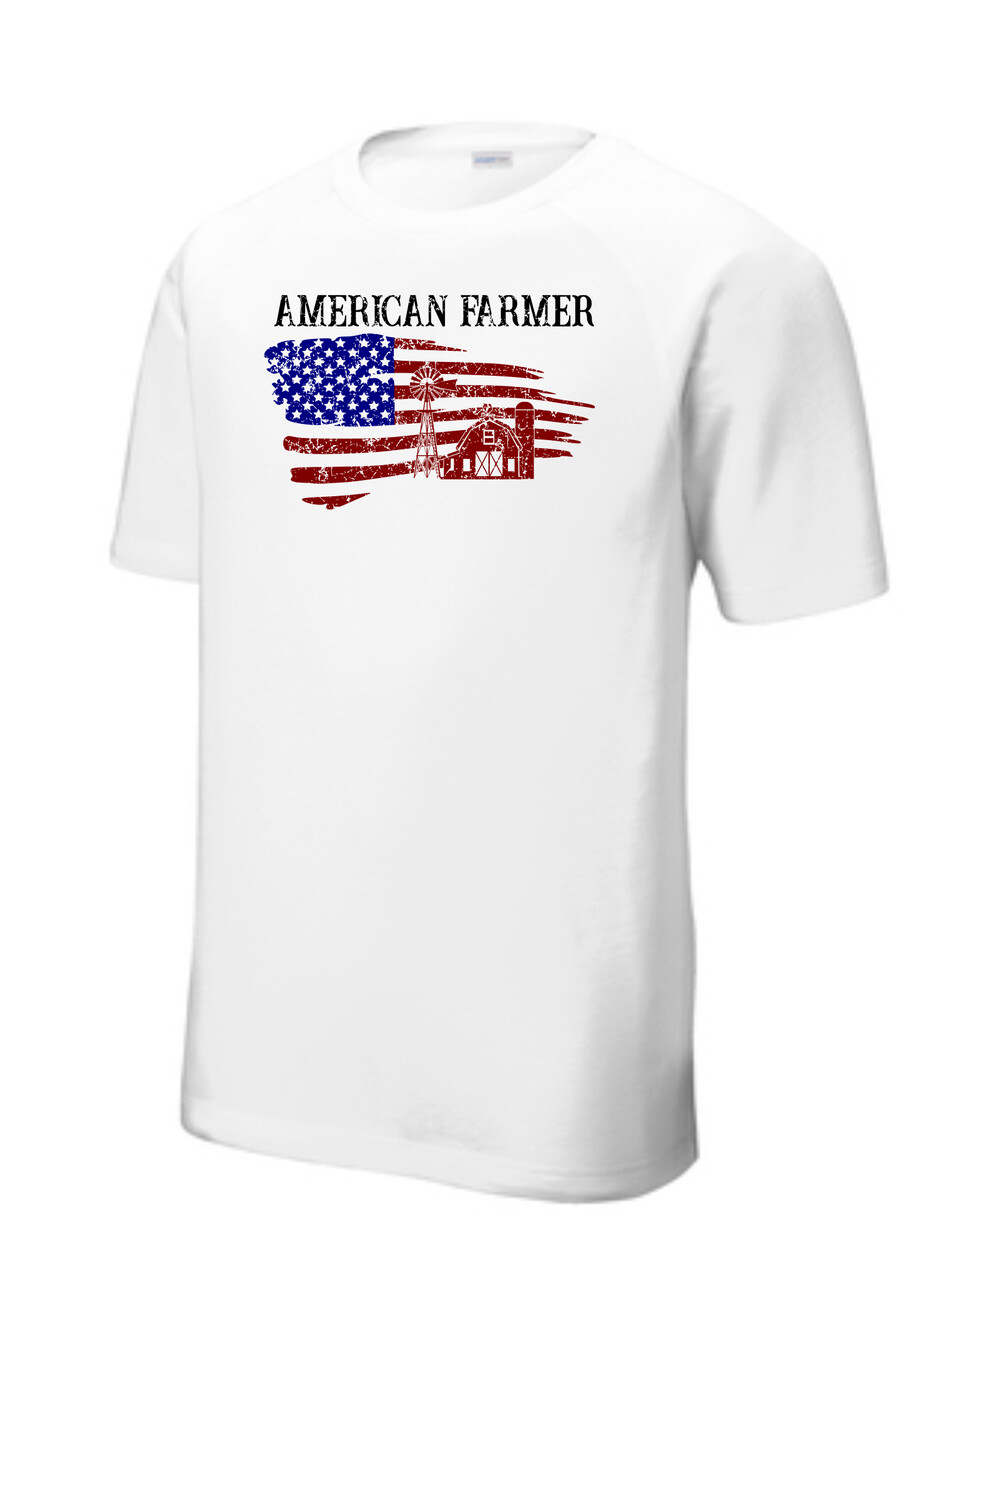 American Farmer Tri-Blend Wicking Raglan Tee